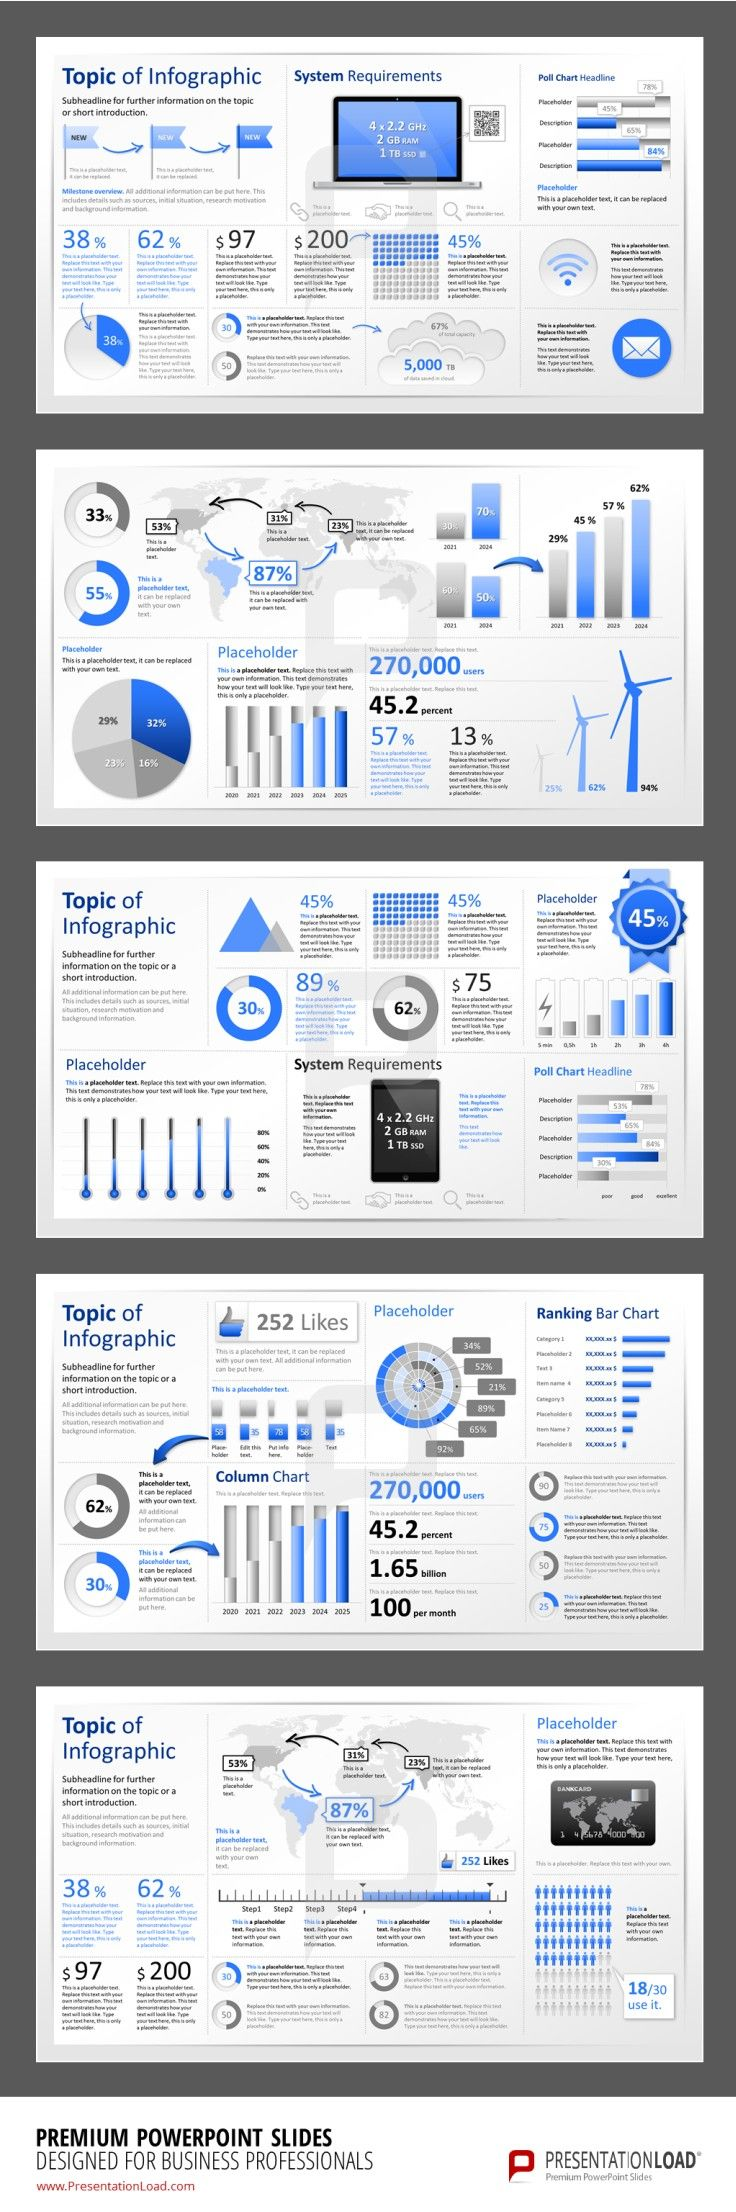 Infographic PowerPoint Templates  #presentationload  www.presentationl...